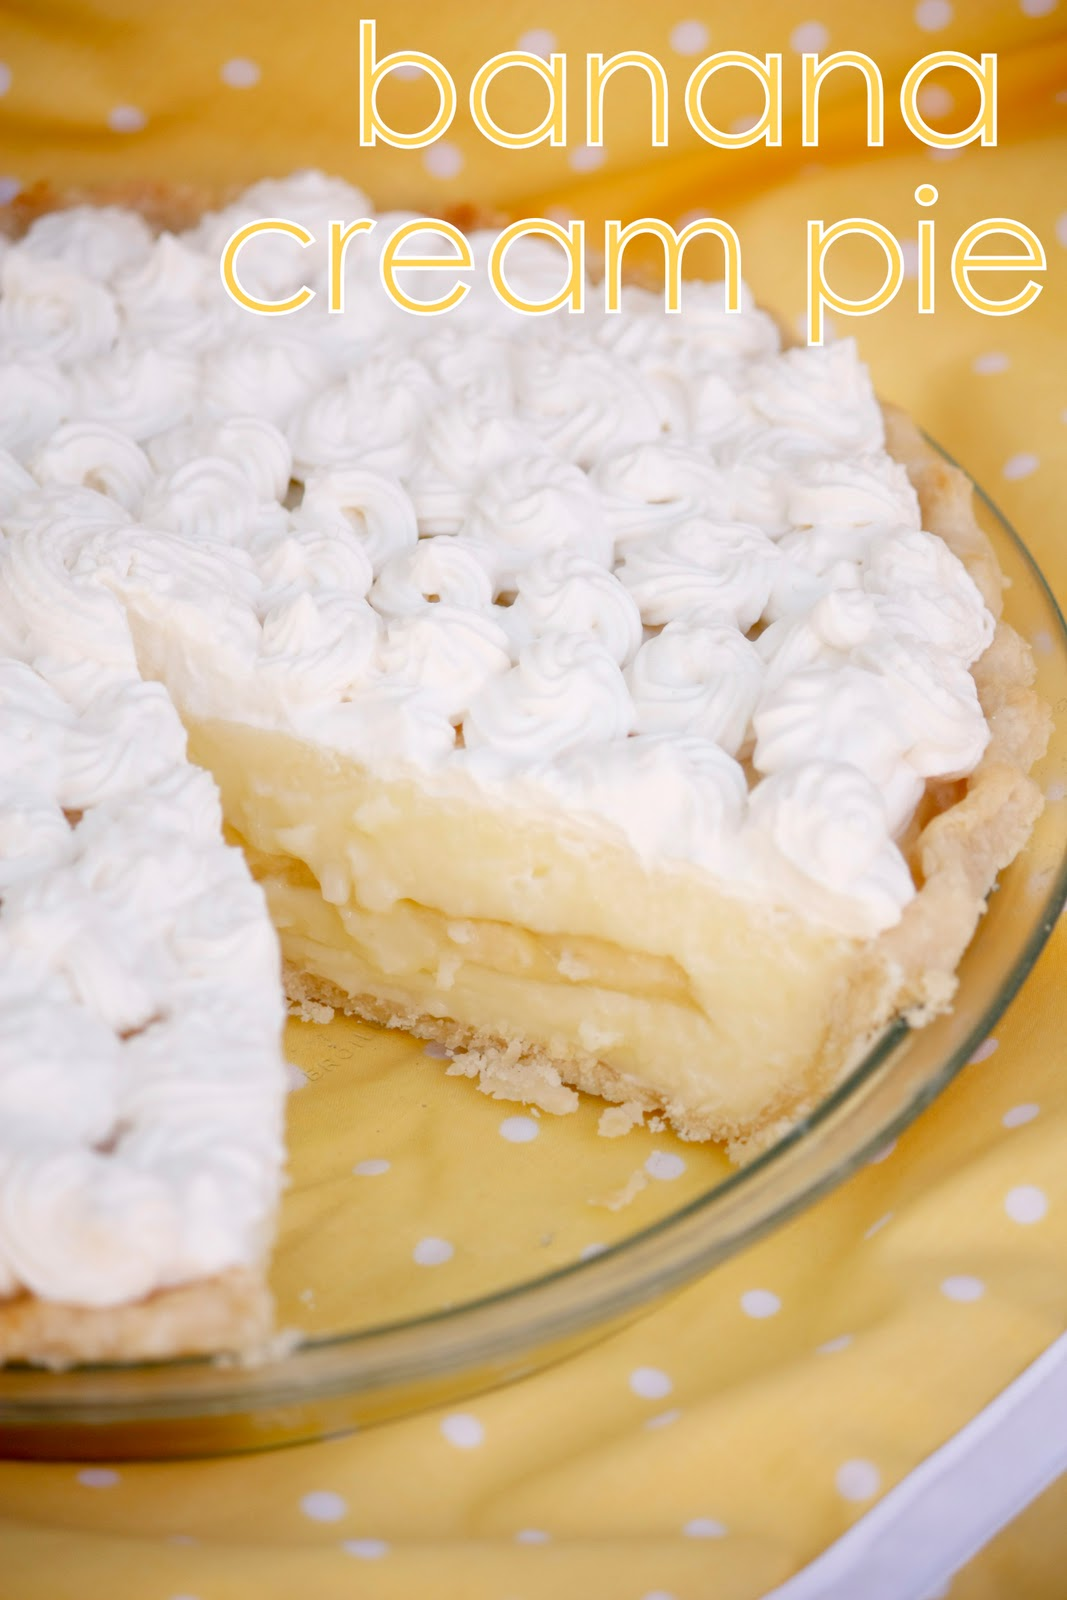 nana banana cream pie - delia creates